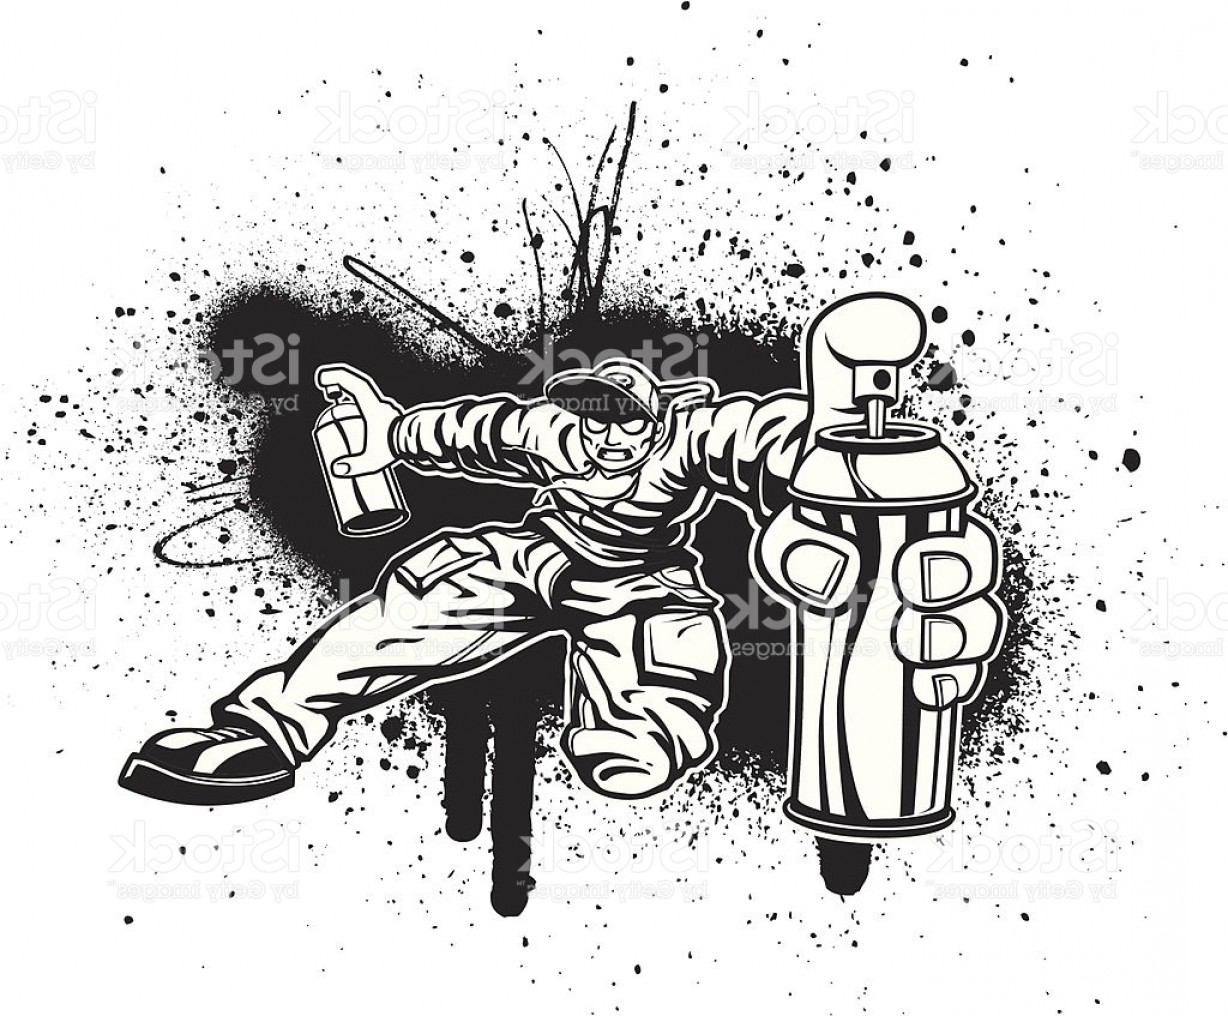 Boba Fett Vector Black And White: Zombie Kid Graffiti Splatter Fest In Black And White Gm